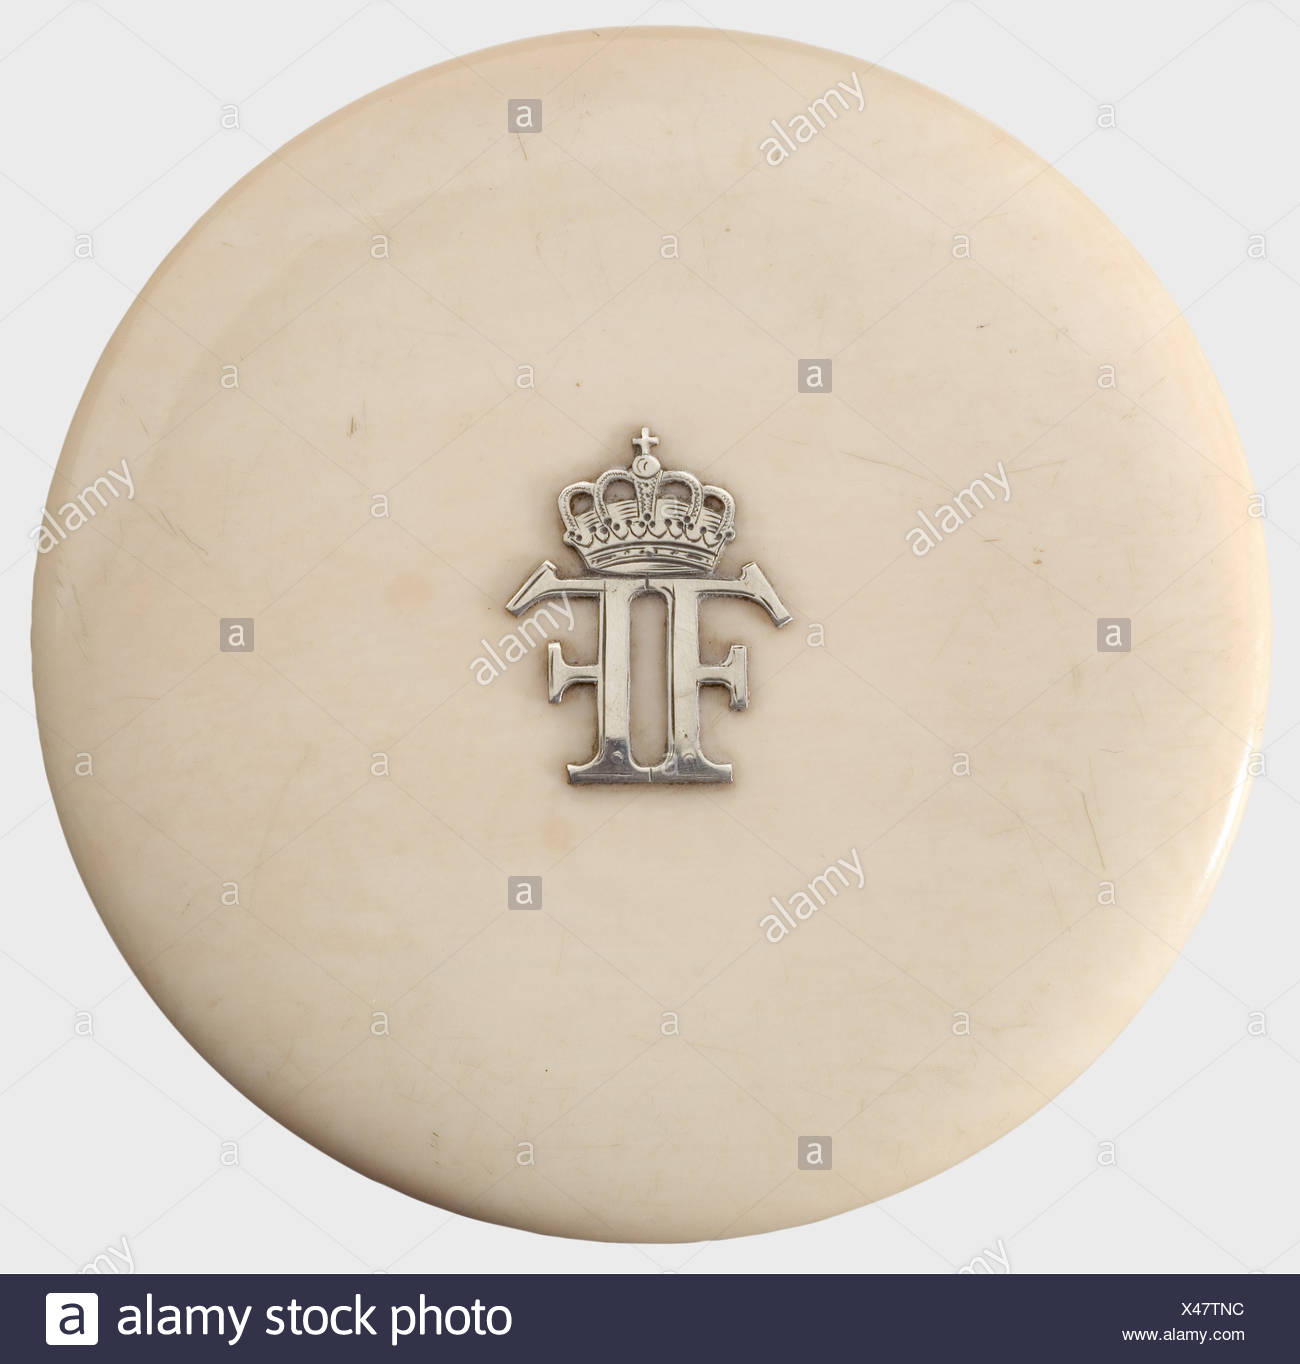 Grand Duke Franz Ferdinand of Austria-Este (1863 - 1914), an ivory